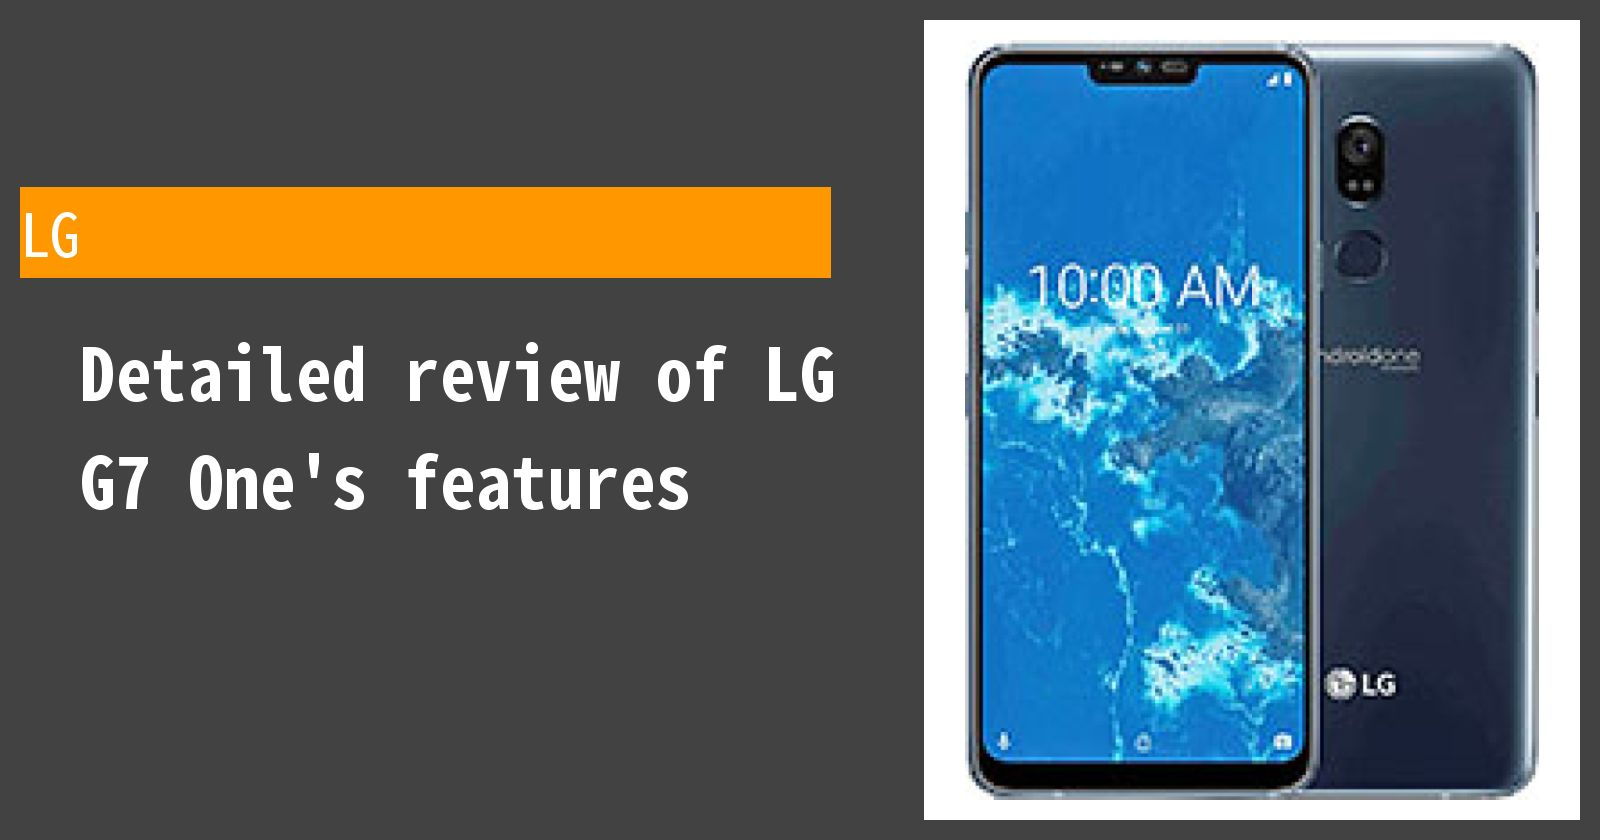 Detailed review of LG G7 One's features